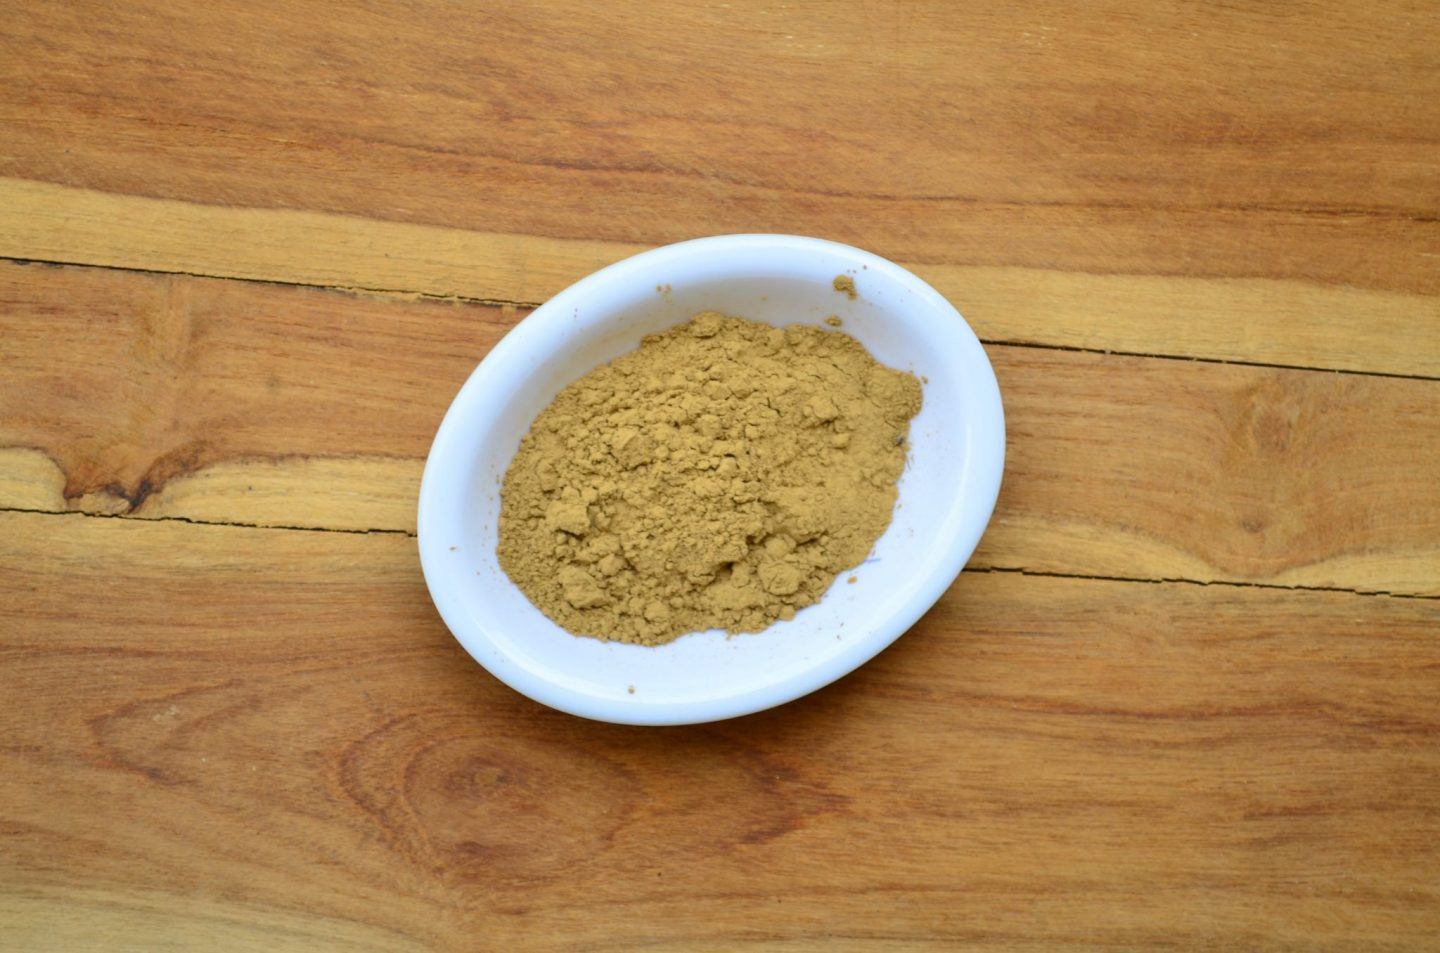 bentonite clay for diaper rash